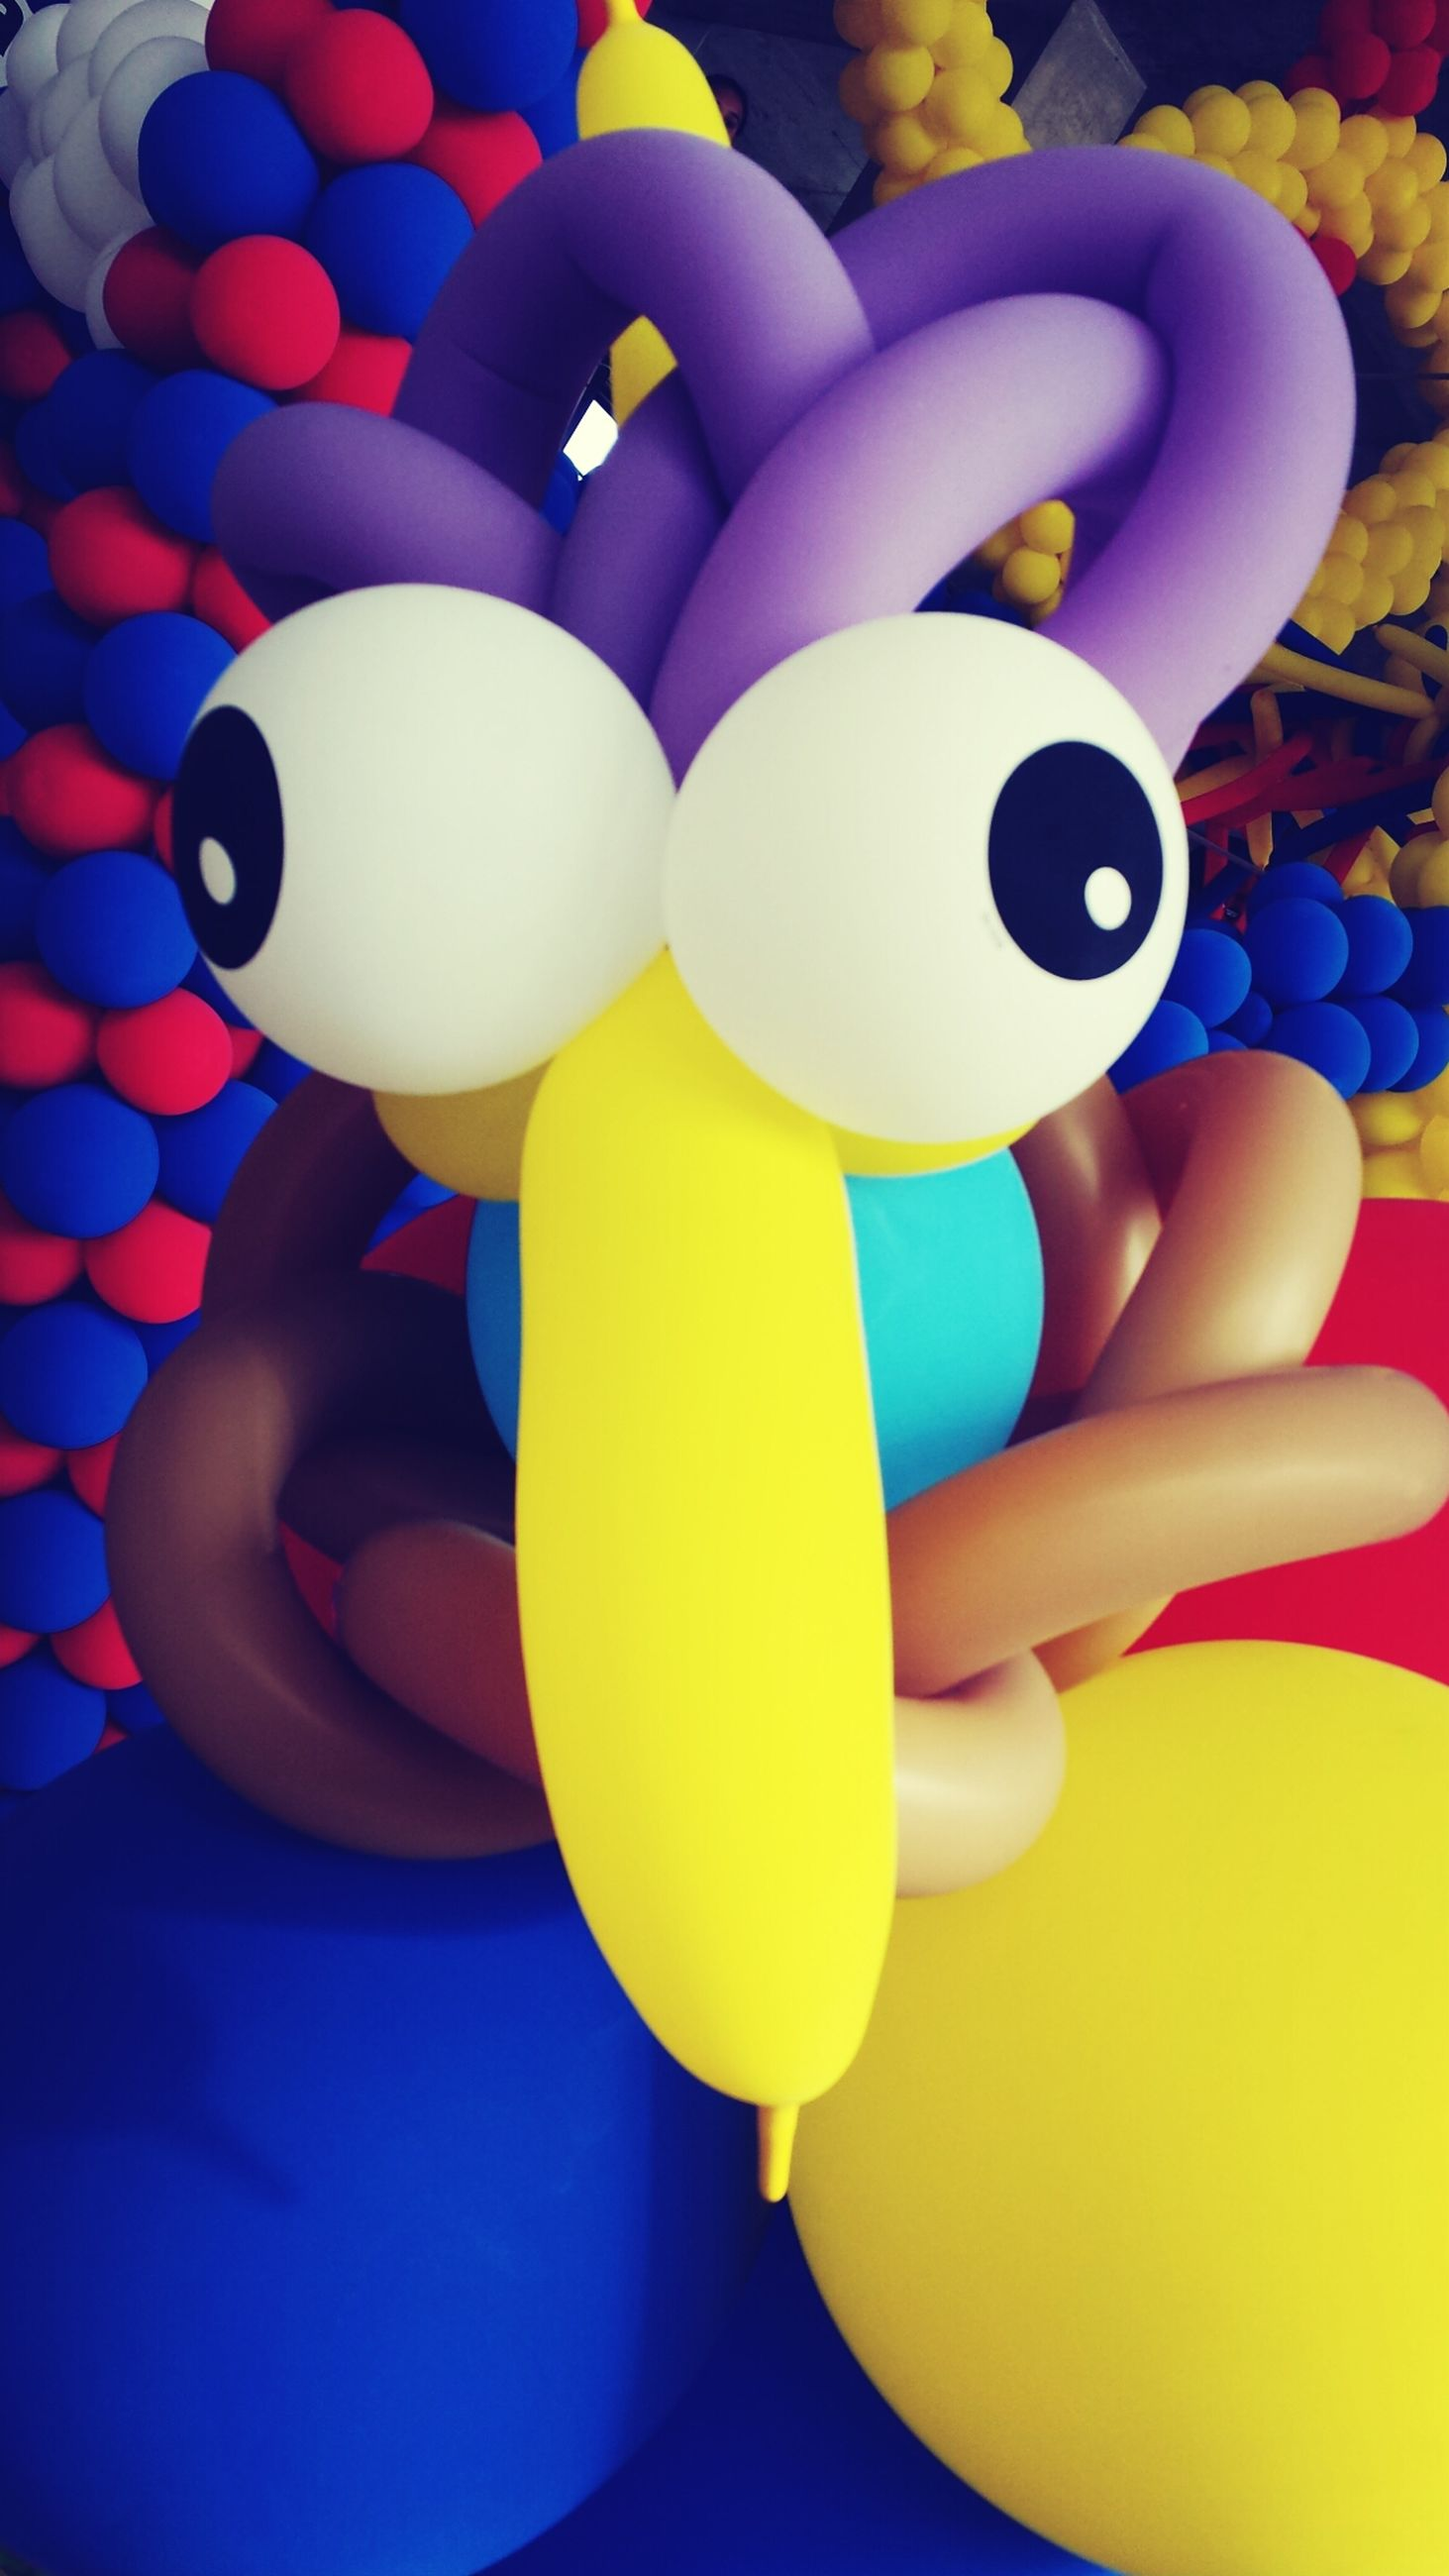 indoors, multi colored, still life, food and drink, childhood, table, drink, close-up, high angle view, blue, refreshment, yellow, colorful, one person, variation, cup, toy, plastic, large group of objects